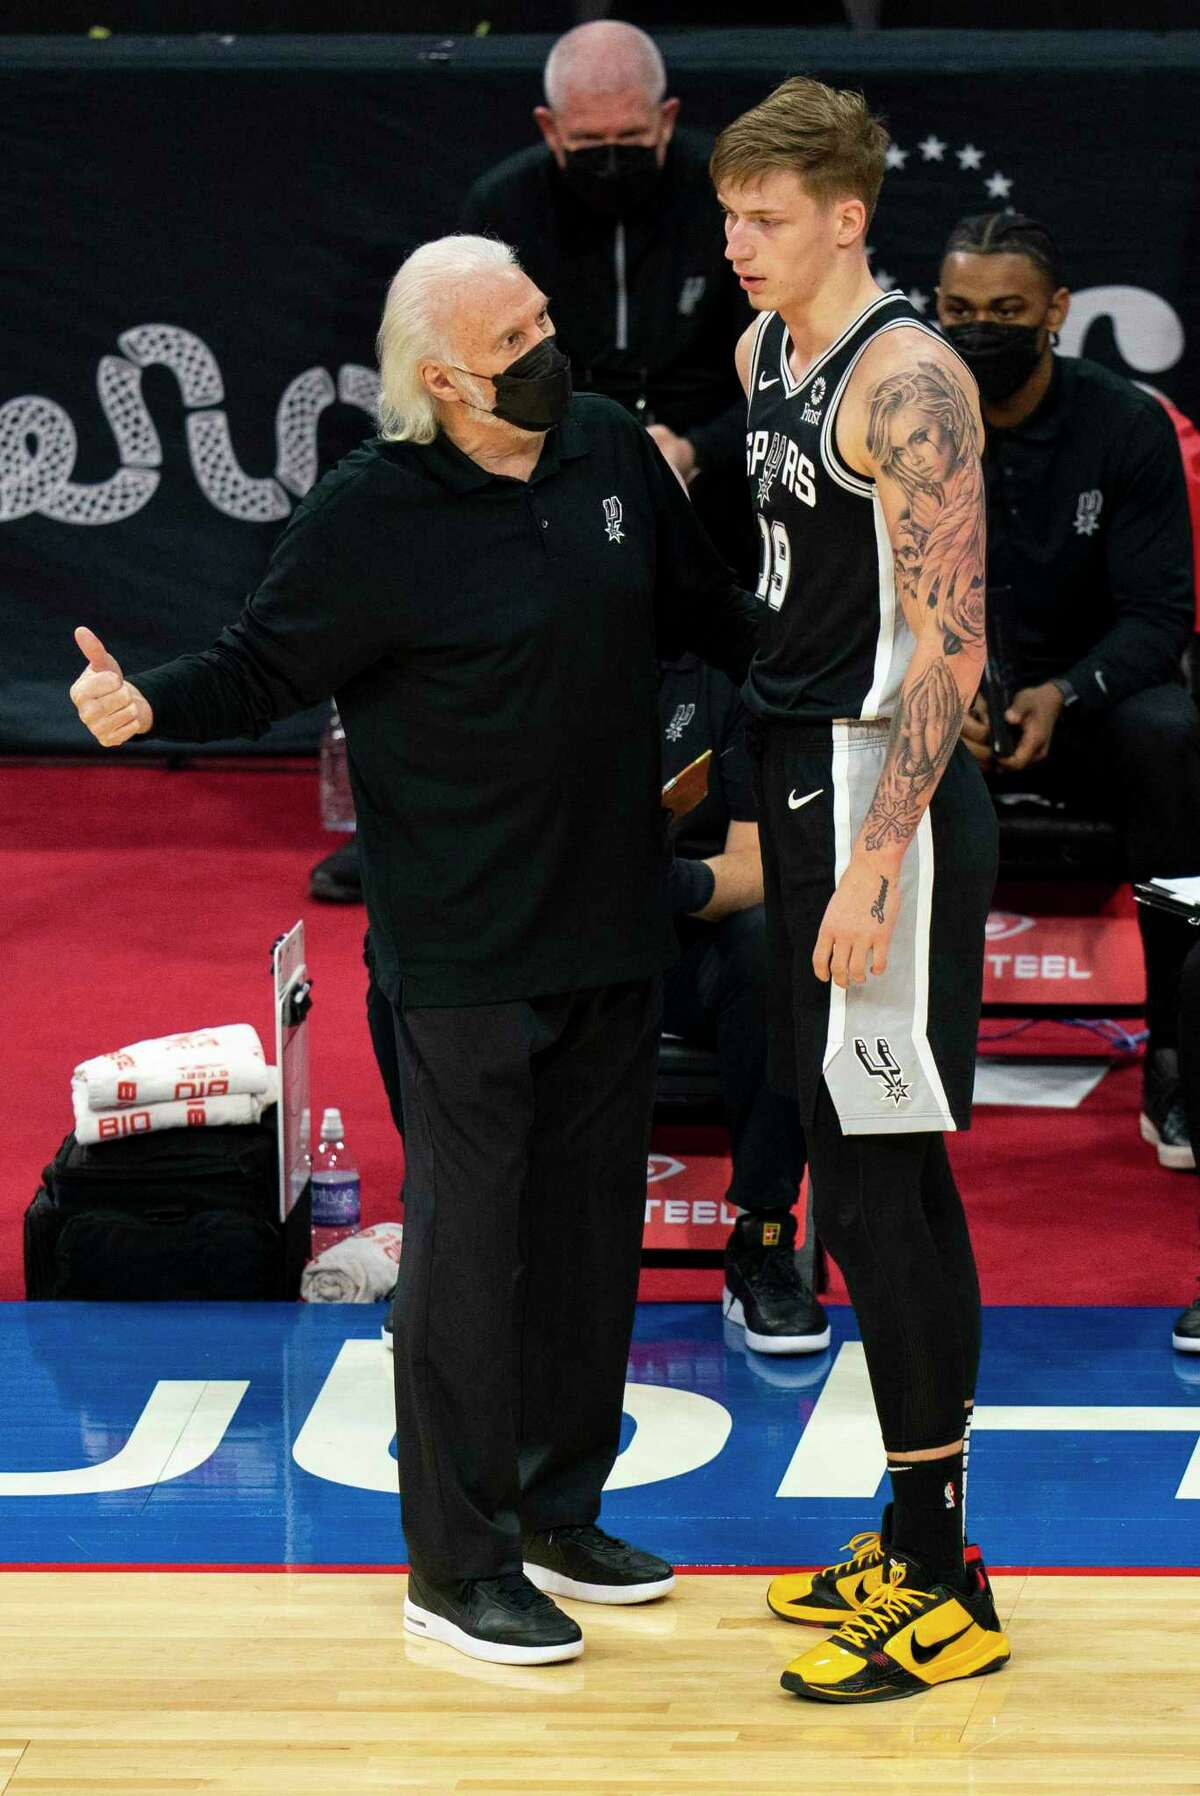 San Antonio Spurs head coach Gregg Popovich, left, talks with Luka Samanic, right, during the second half of an NBA basketball game against the Philadelphia 76ers, Sunday, March 14, 2021, in Philadelphia. (AP Photo/Chris Szagola)